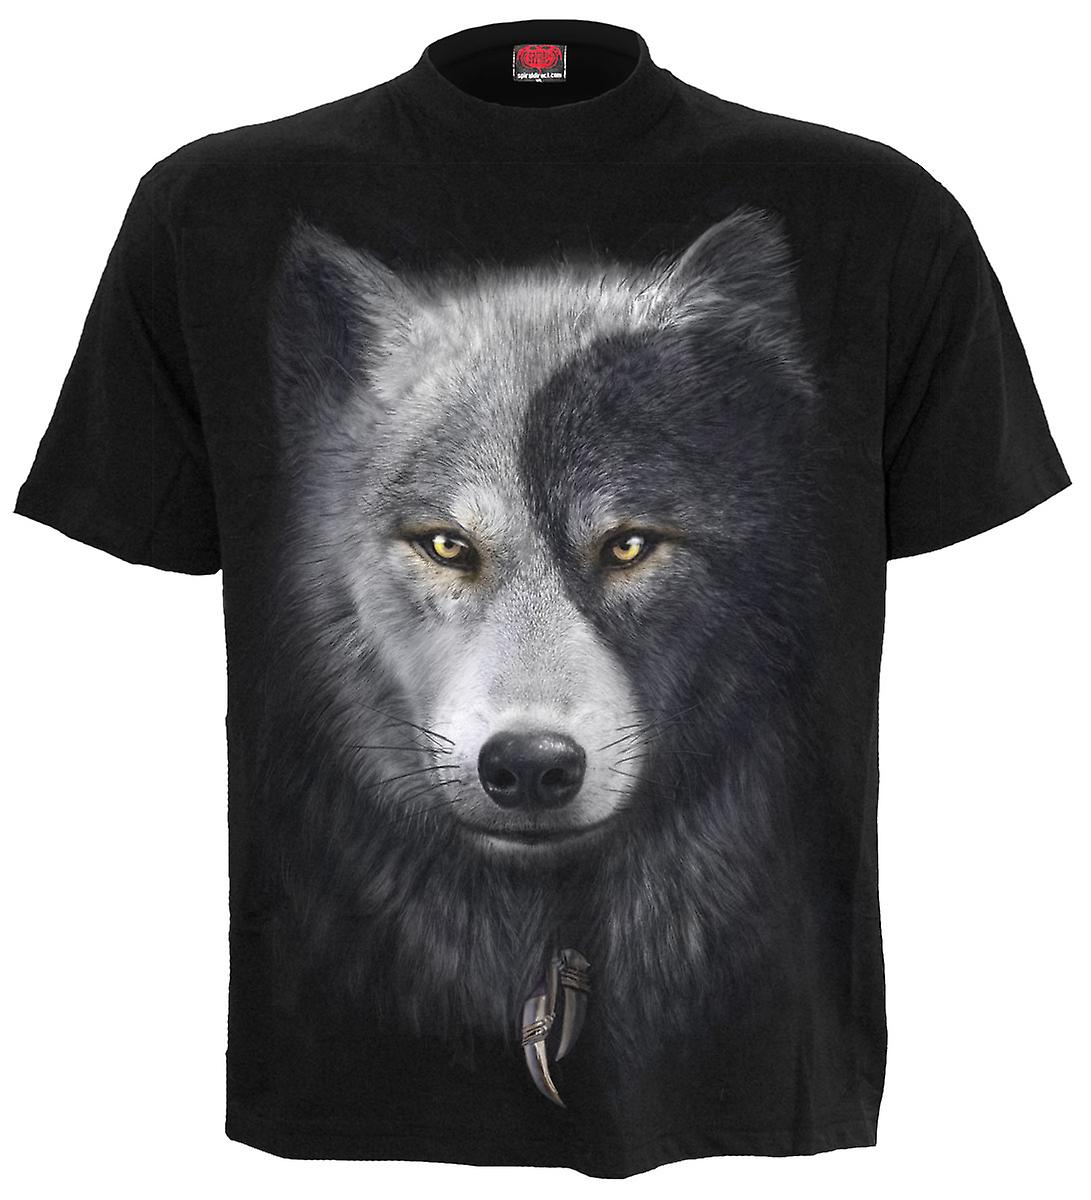 Spiral Direct Gothic WOLF CHI - T-Shirt Black Plus Size|Wolf|Yin Yang|Native American|Mystical